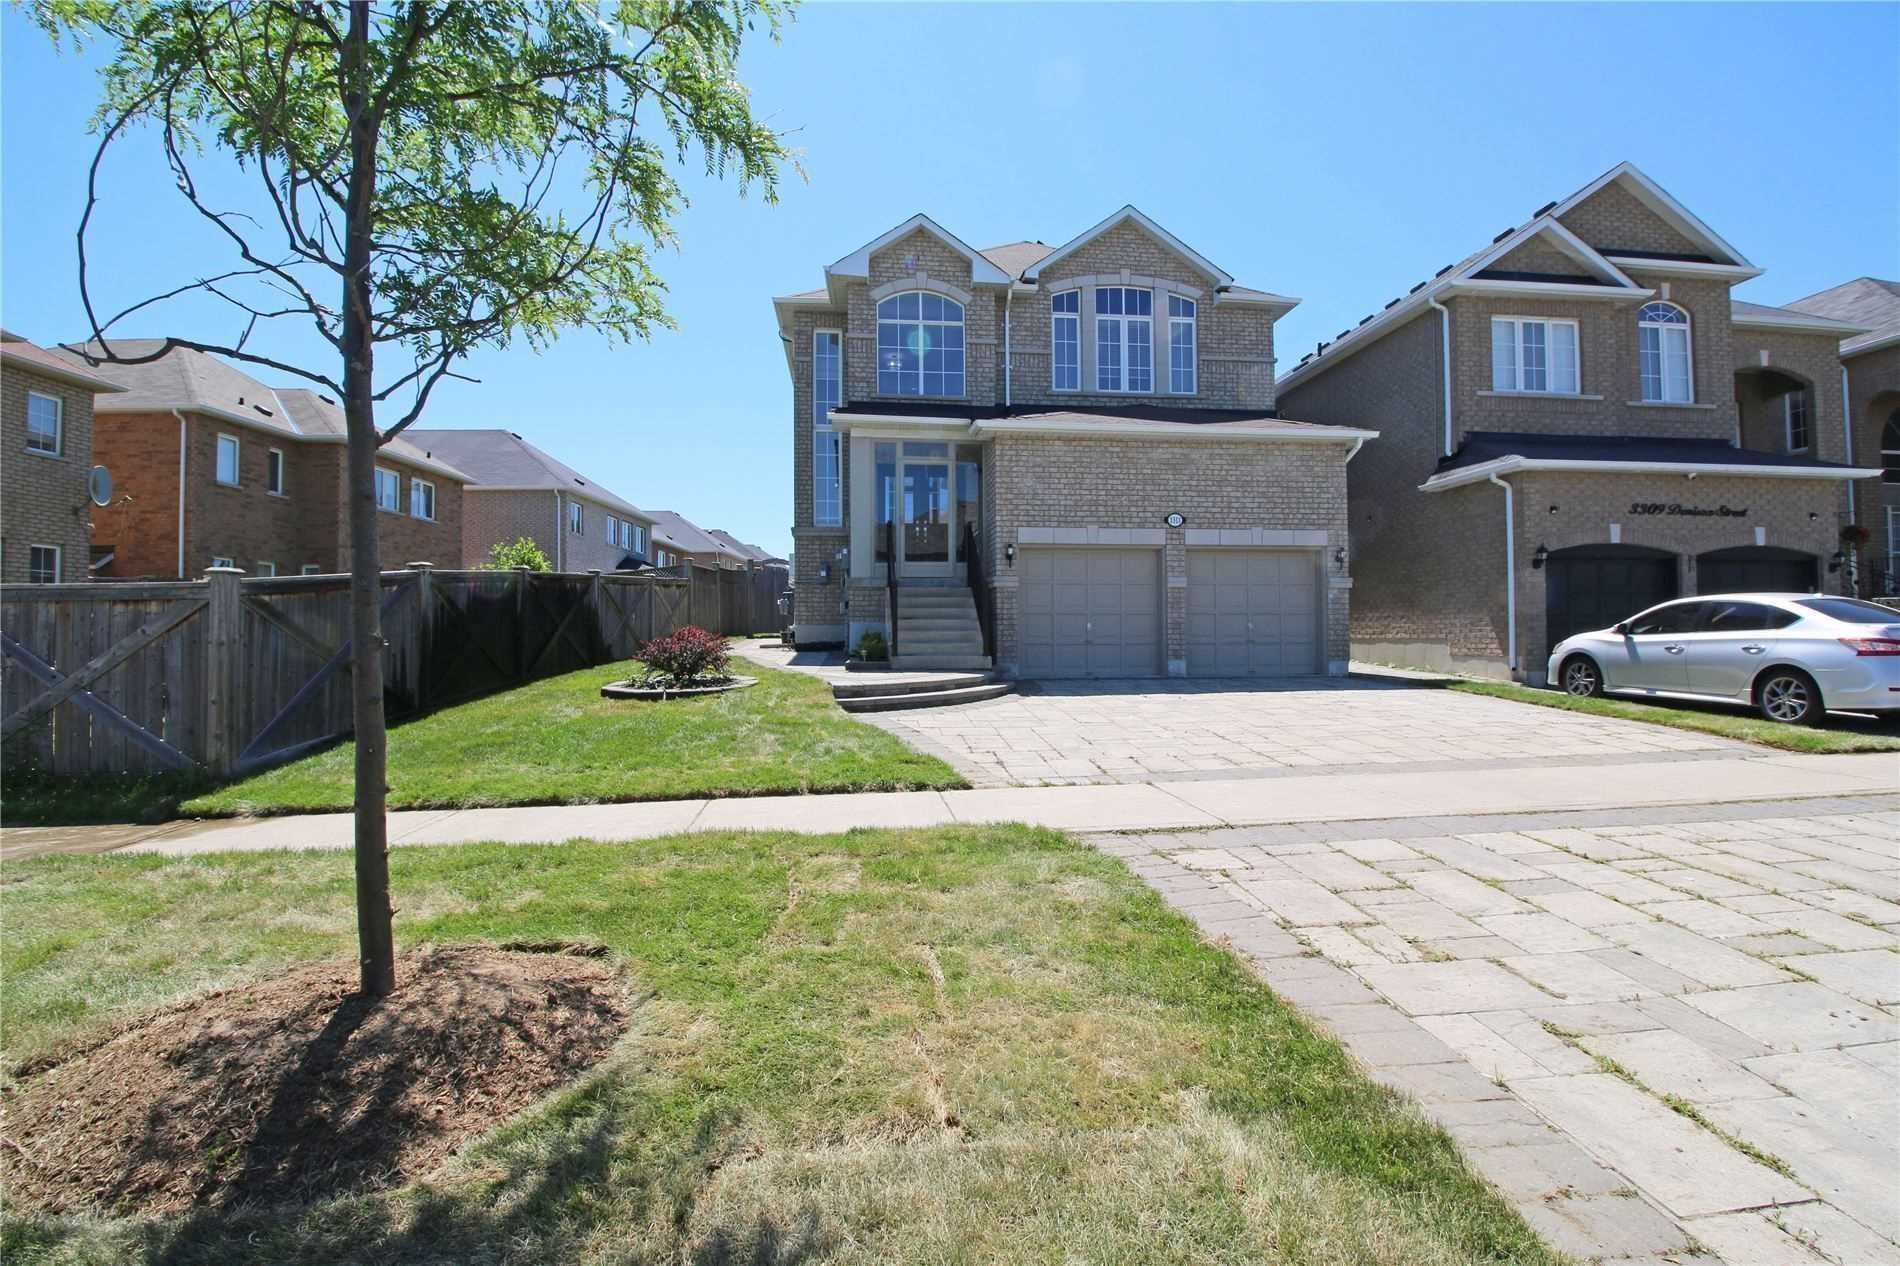 Detached house For Lease In Markham - 3311 Denison St, Markham, Ontario, Canada L3S0B3 , 3 Bedrooms Bedrooms, ,2 BathroomsBathrooms,Detached,For Lease,Bsmt 1,Denison